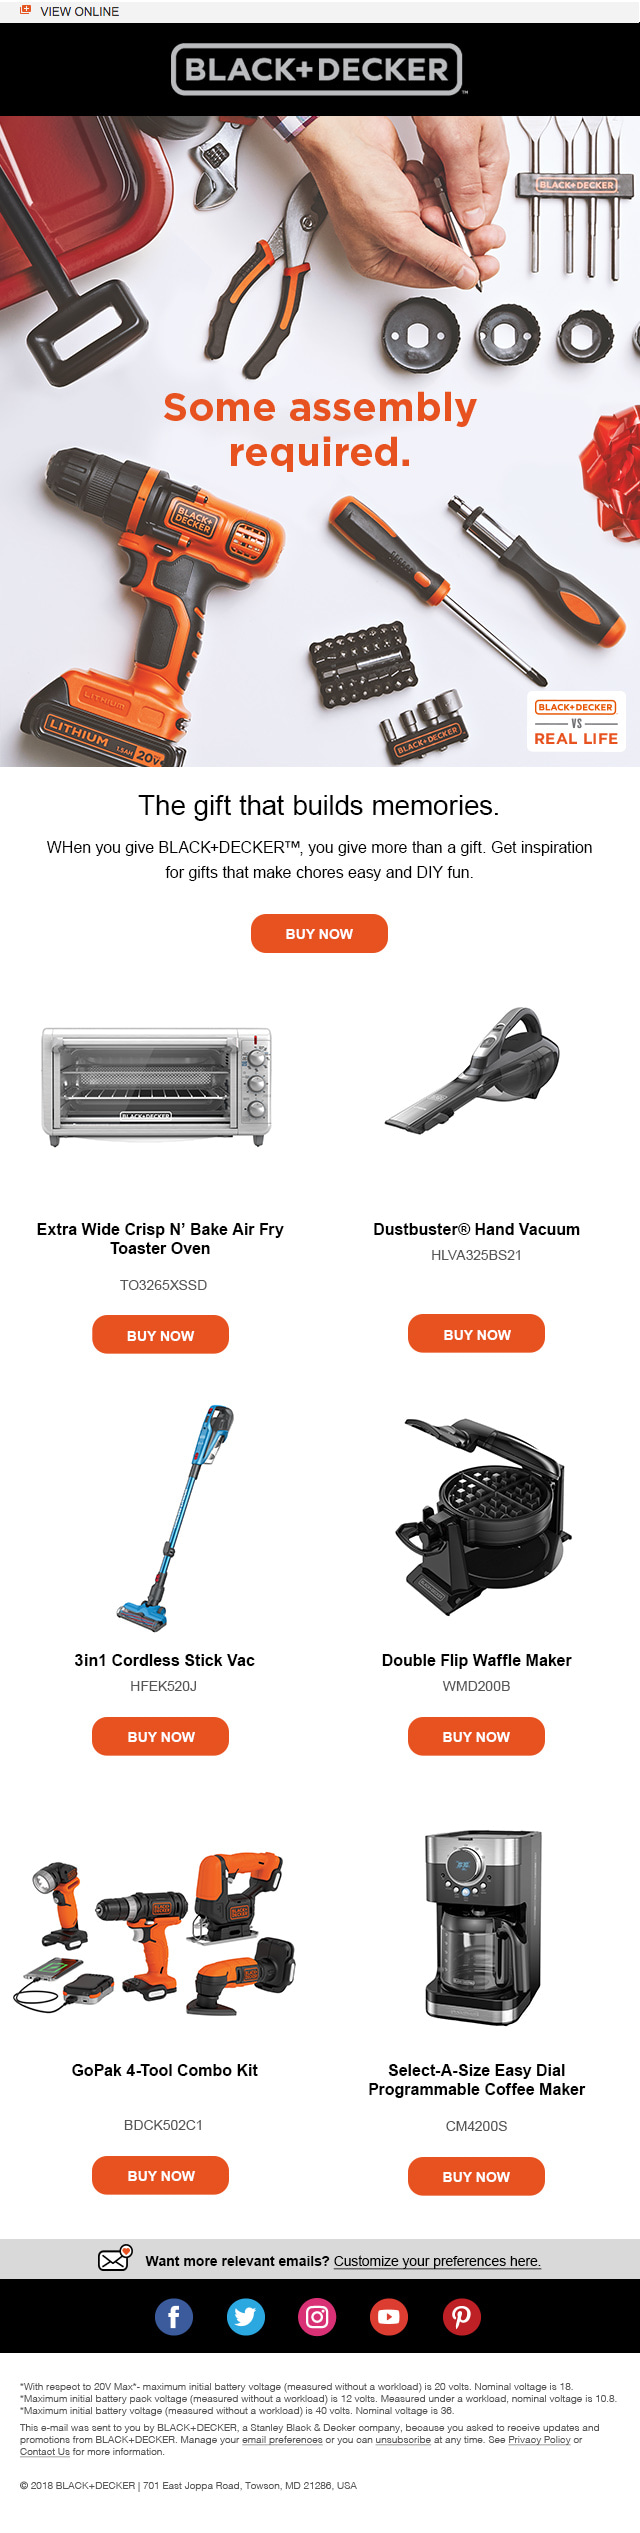 BLACK+DECKER vs. Gifting Campaign